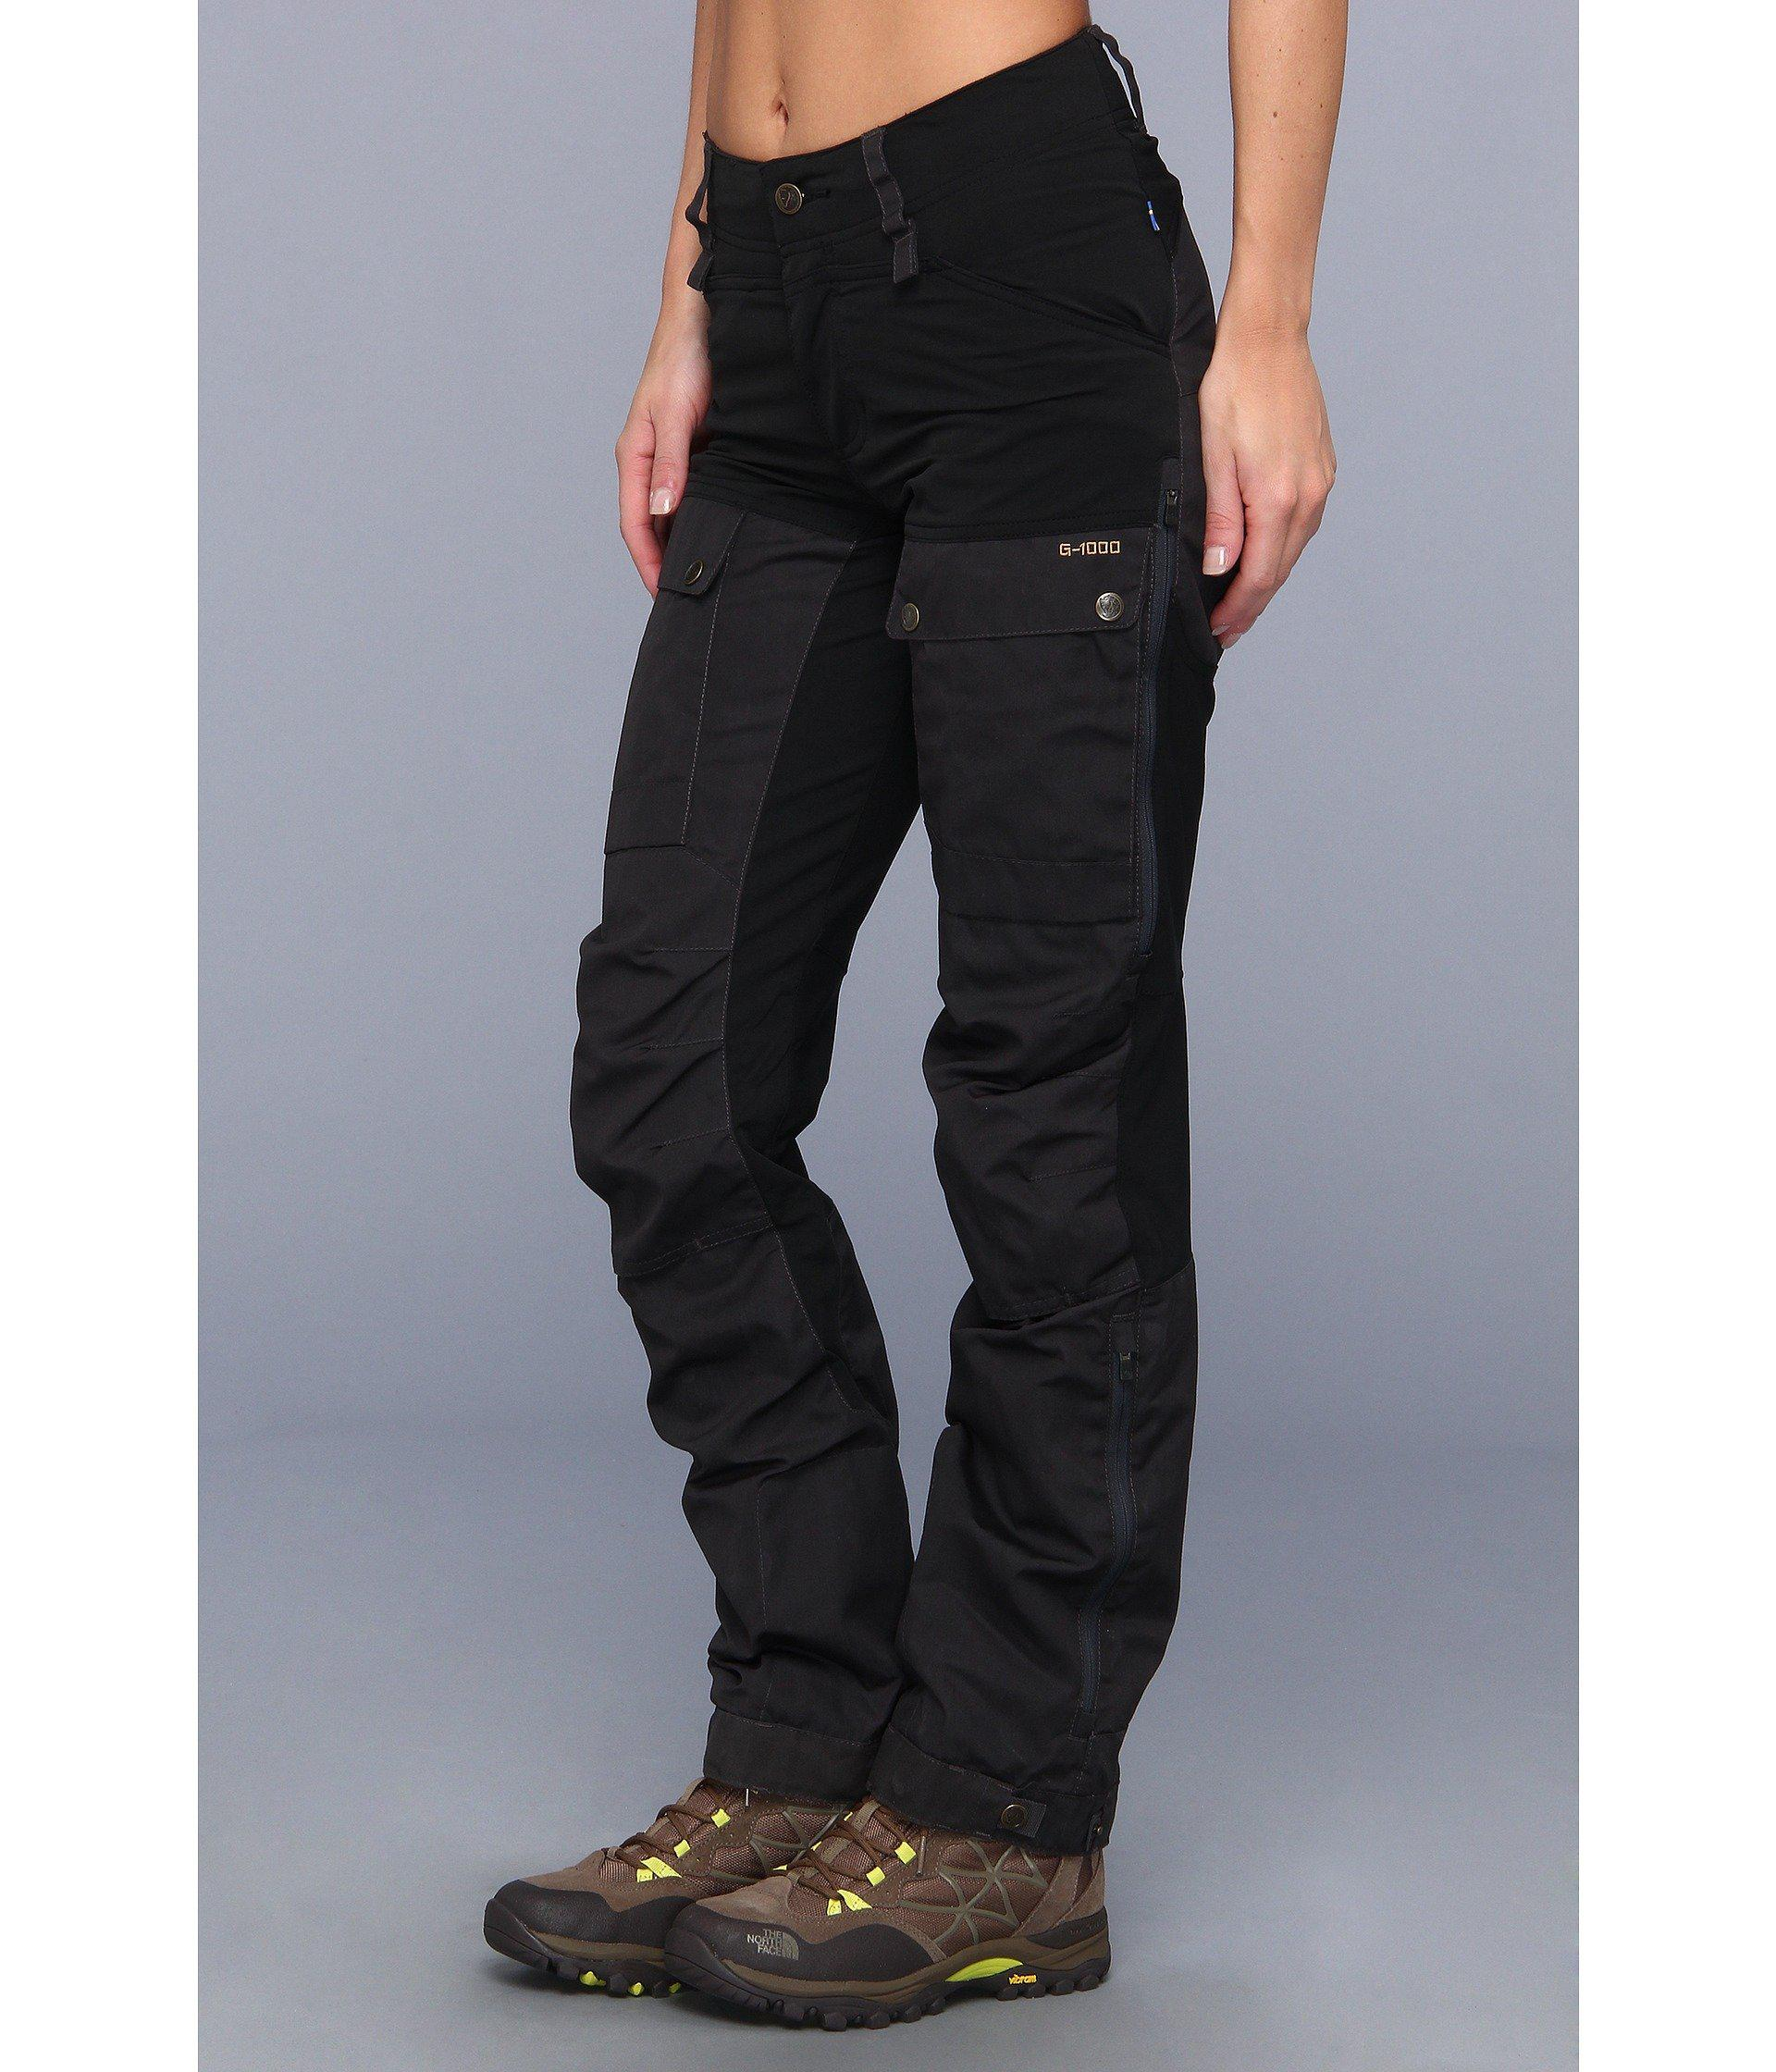 4f182598b3620 Fjallraven Keb Trousers in Black - Lyst